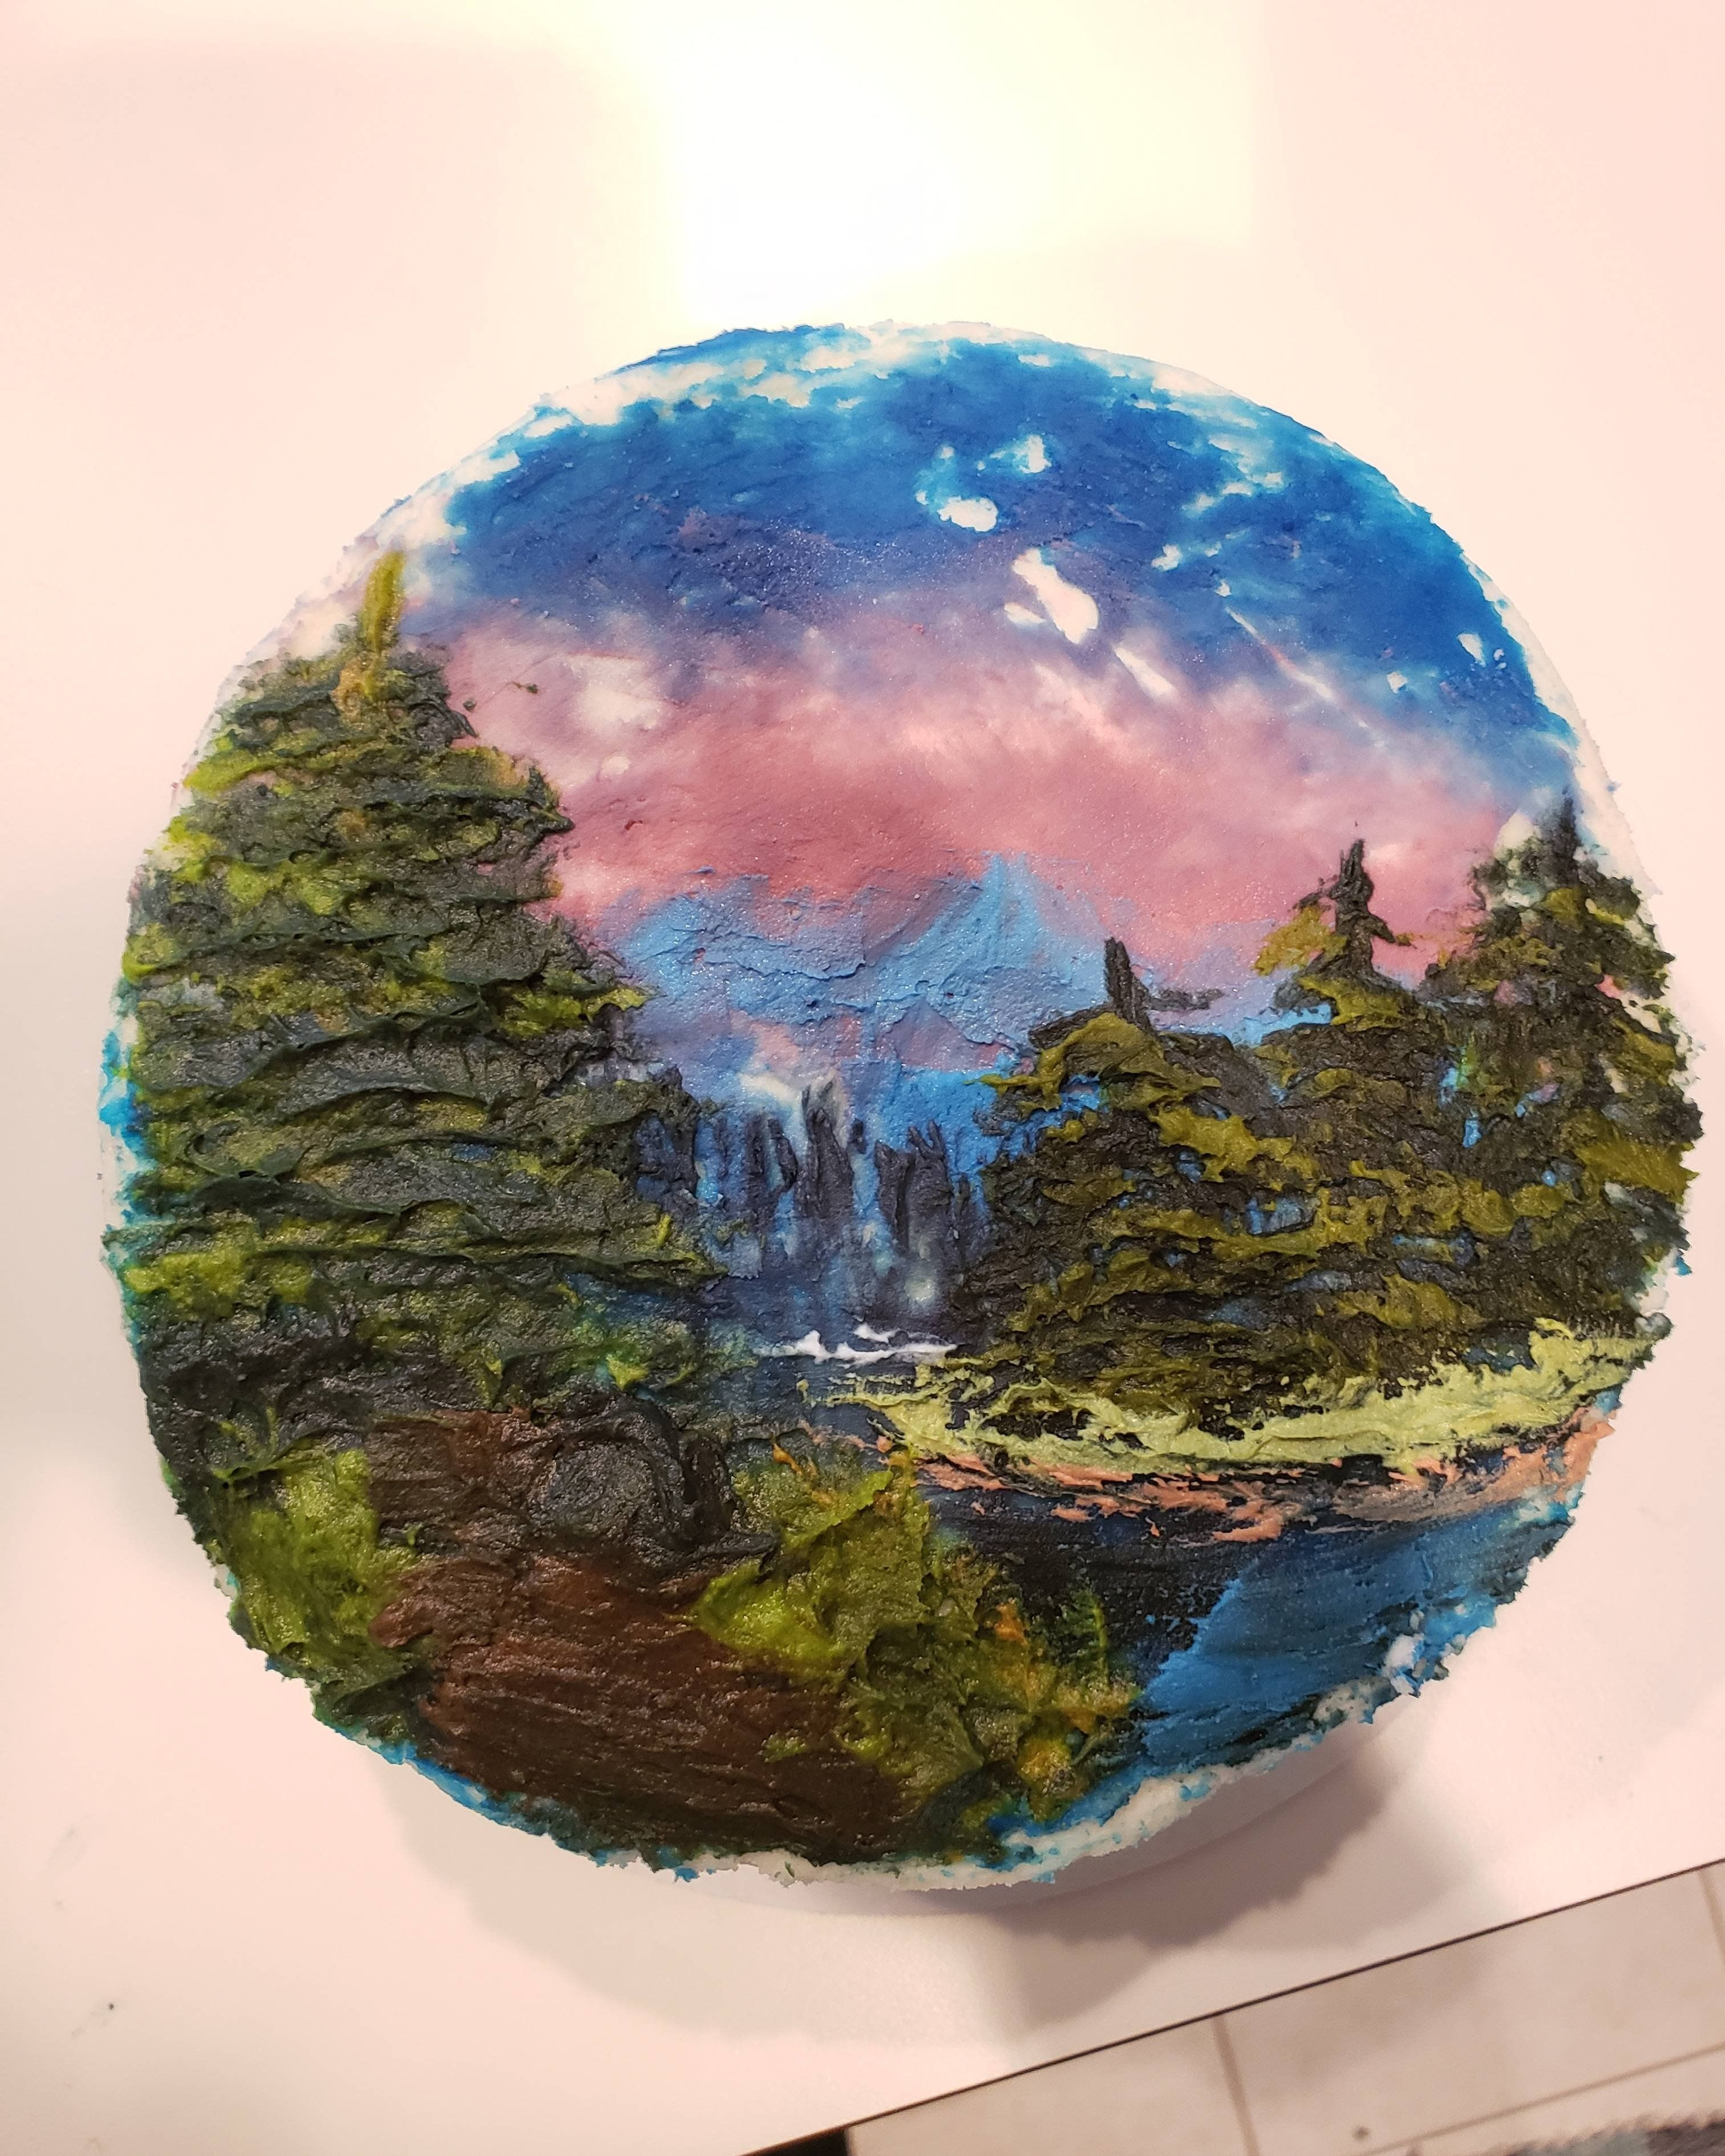 Decided to try a Bob Ross painting on a cake Baking